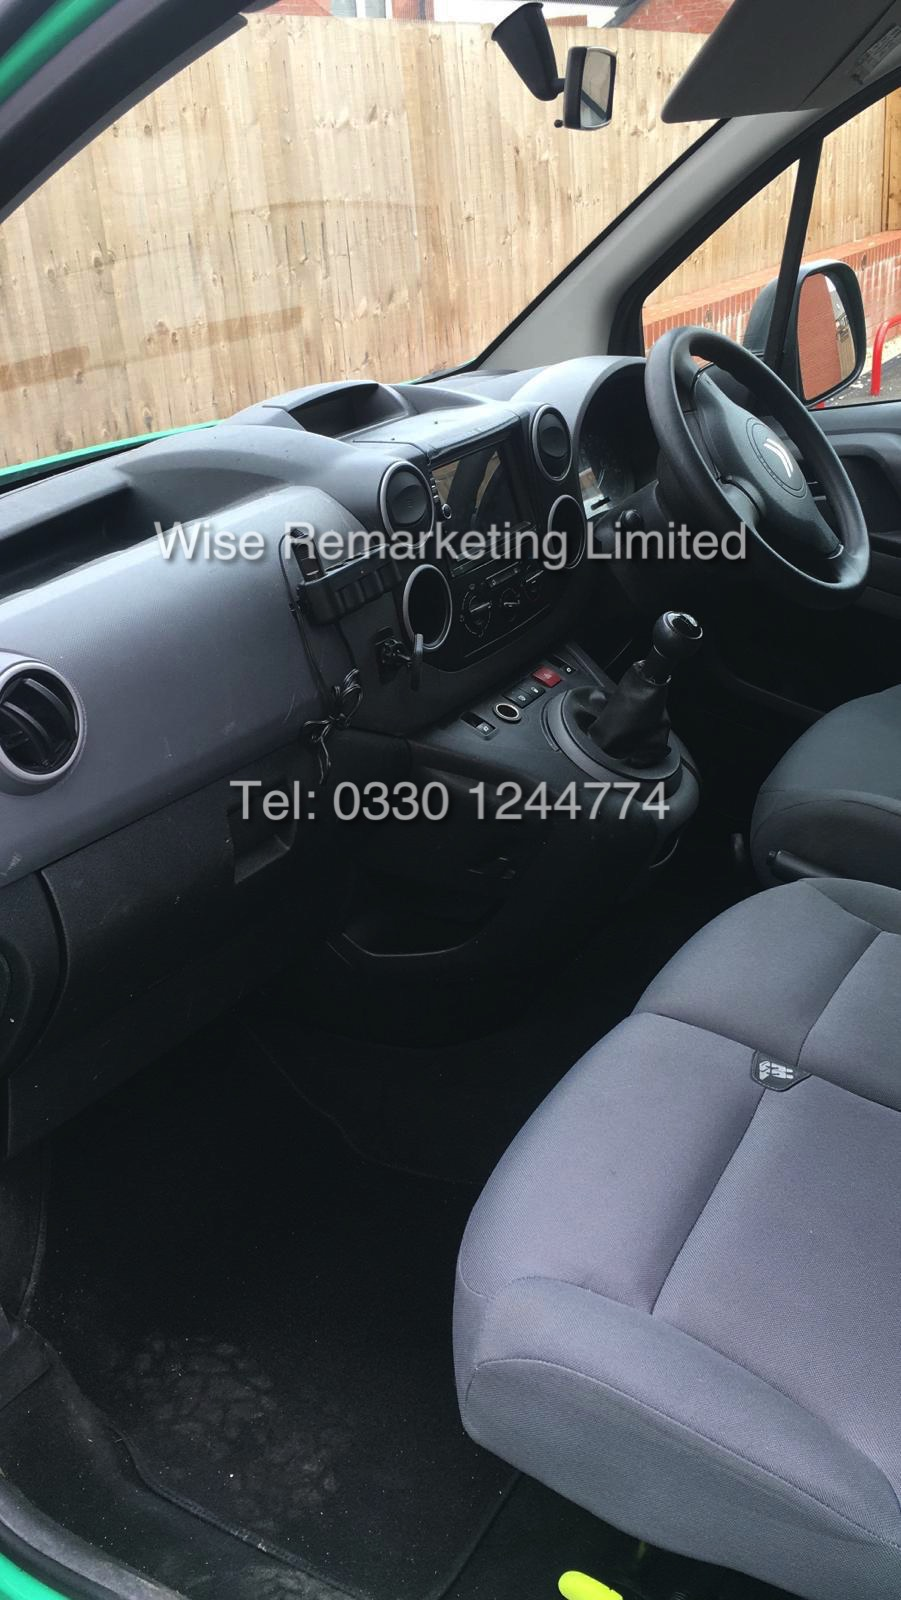 CITROEN BERLINGO 1.6 HDI LX AIRDREAM EDITION *2015 SPEC* - Image 10 of 11